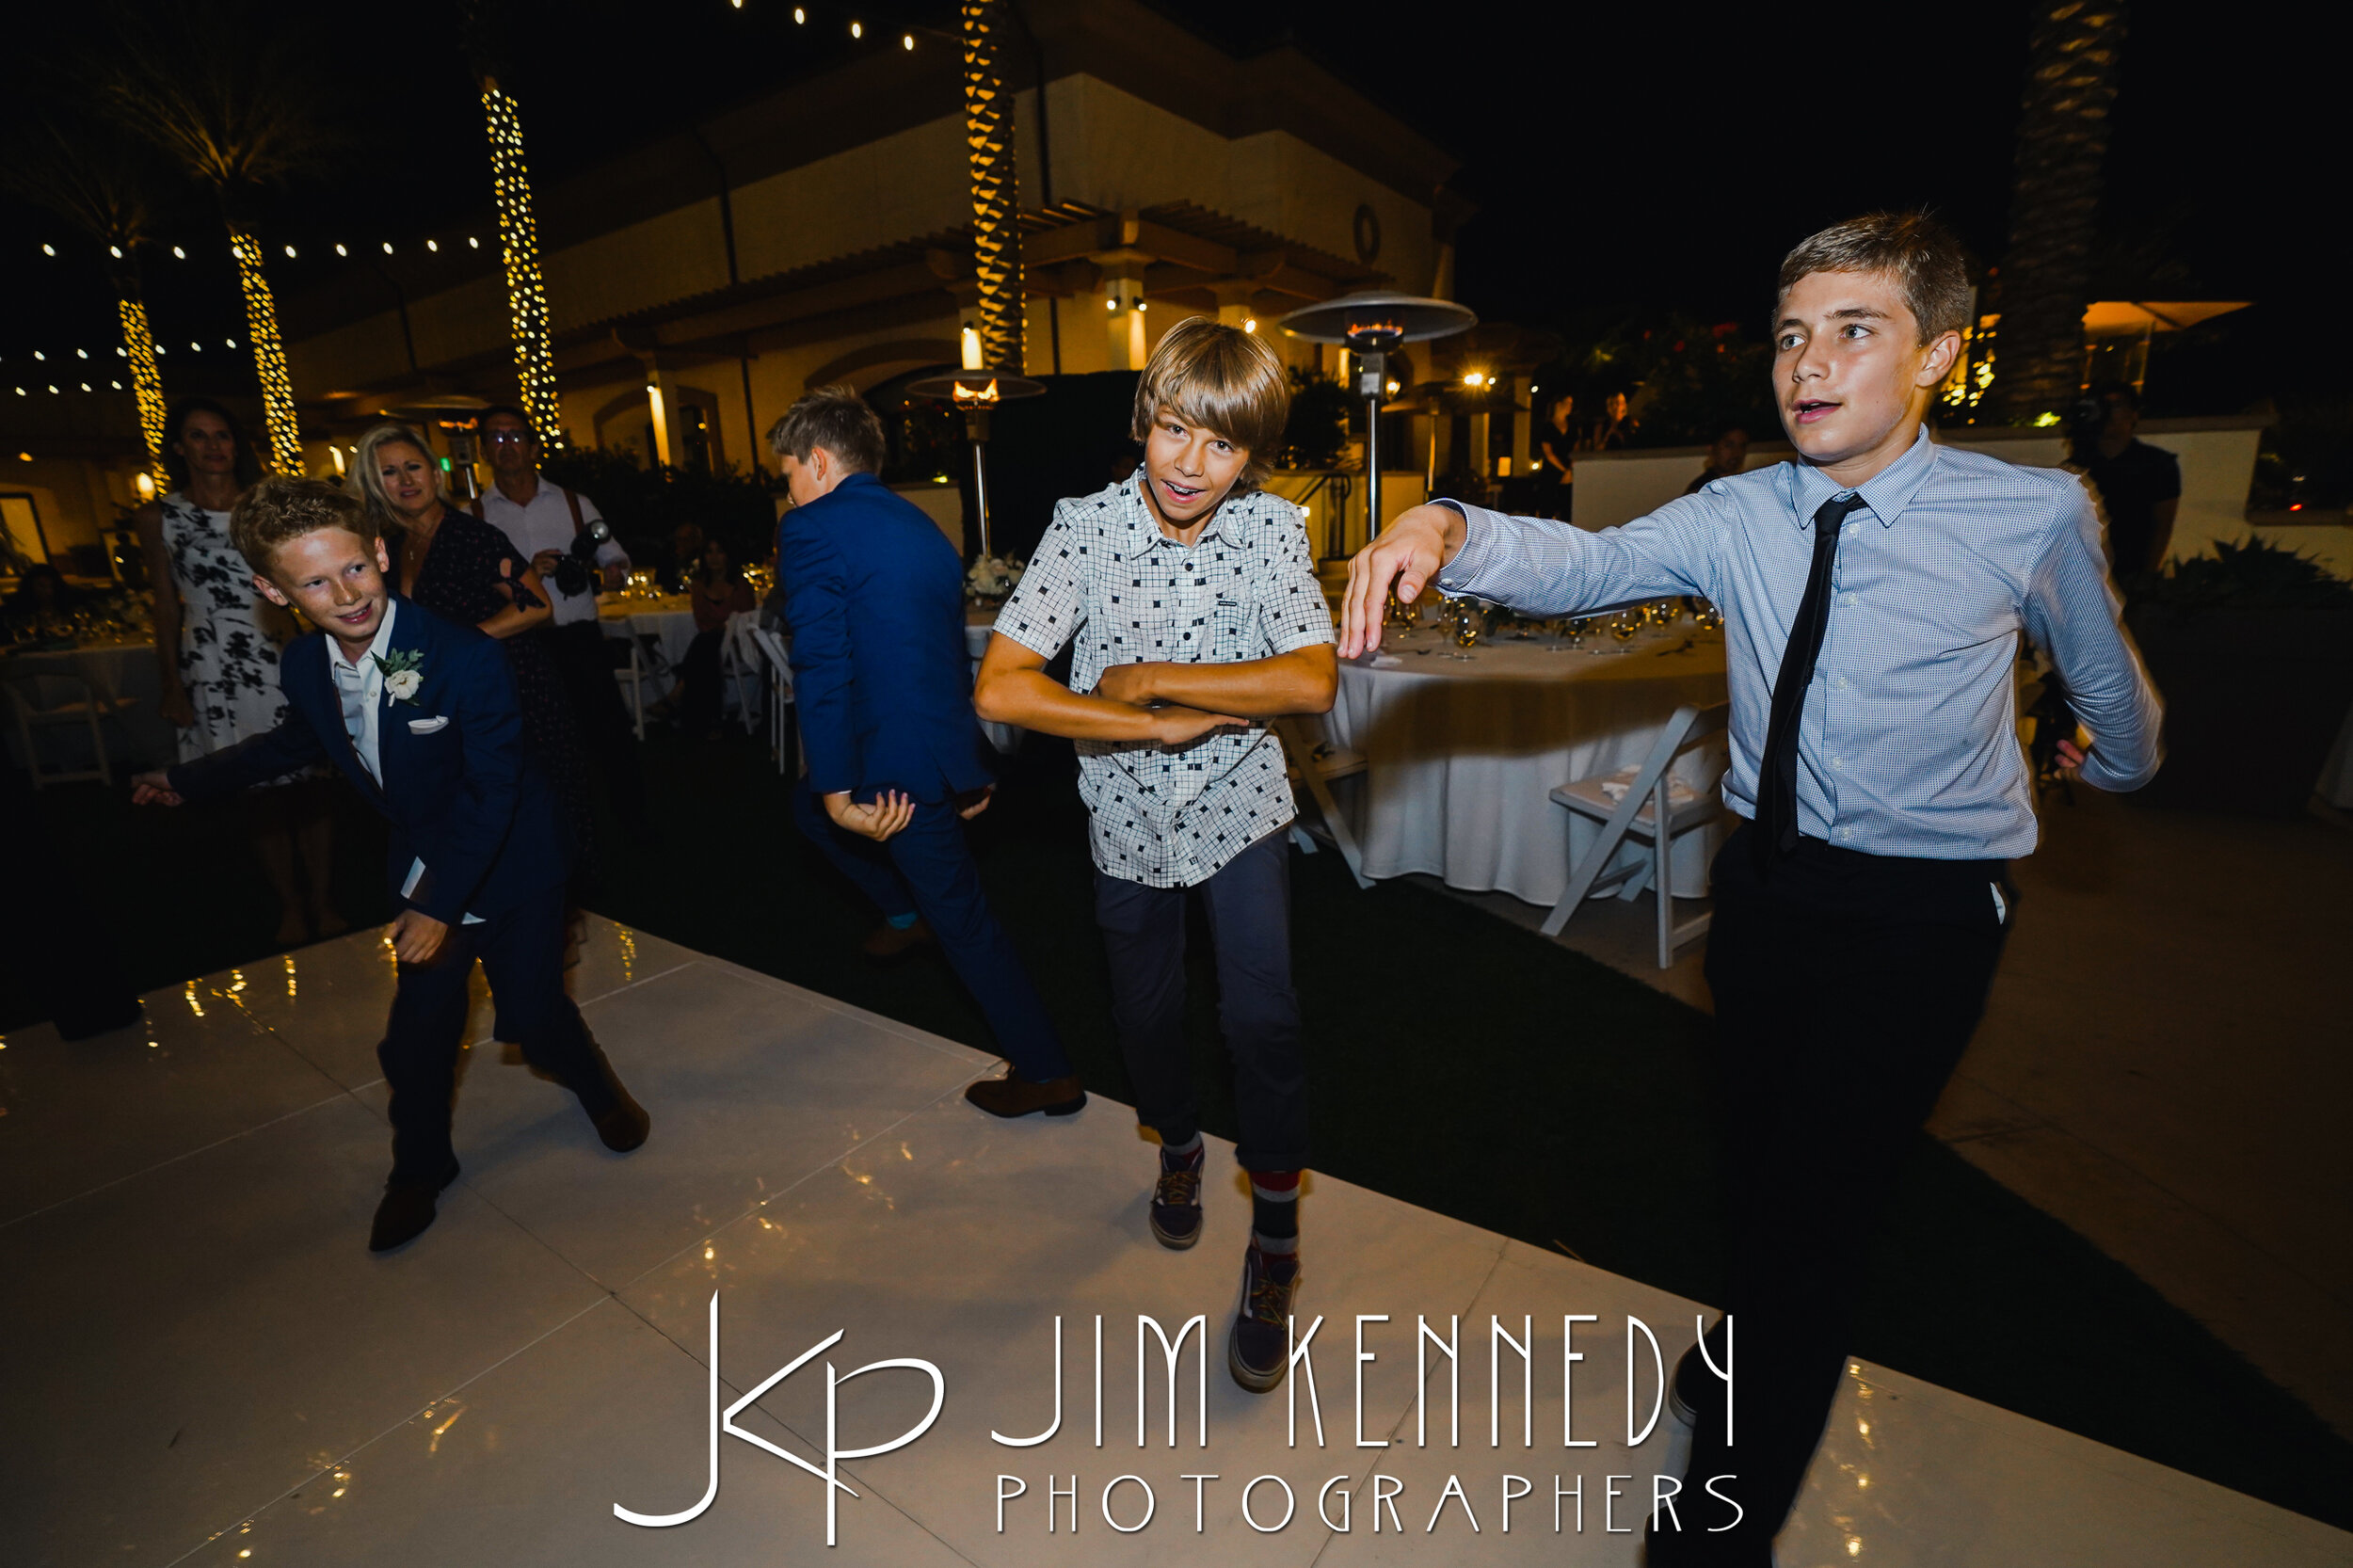 waterfront-hilton-wedding-jim-kennedy-photographers_0203.JPG